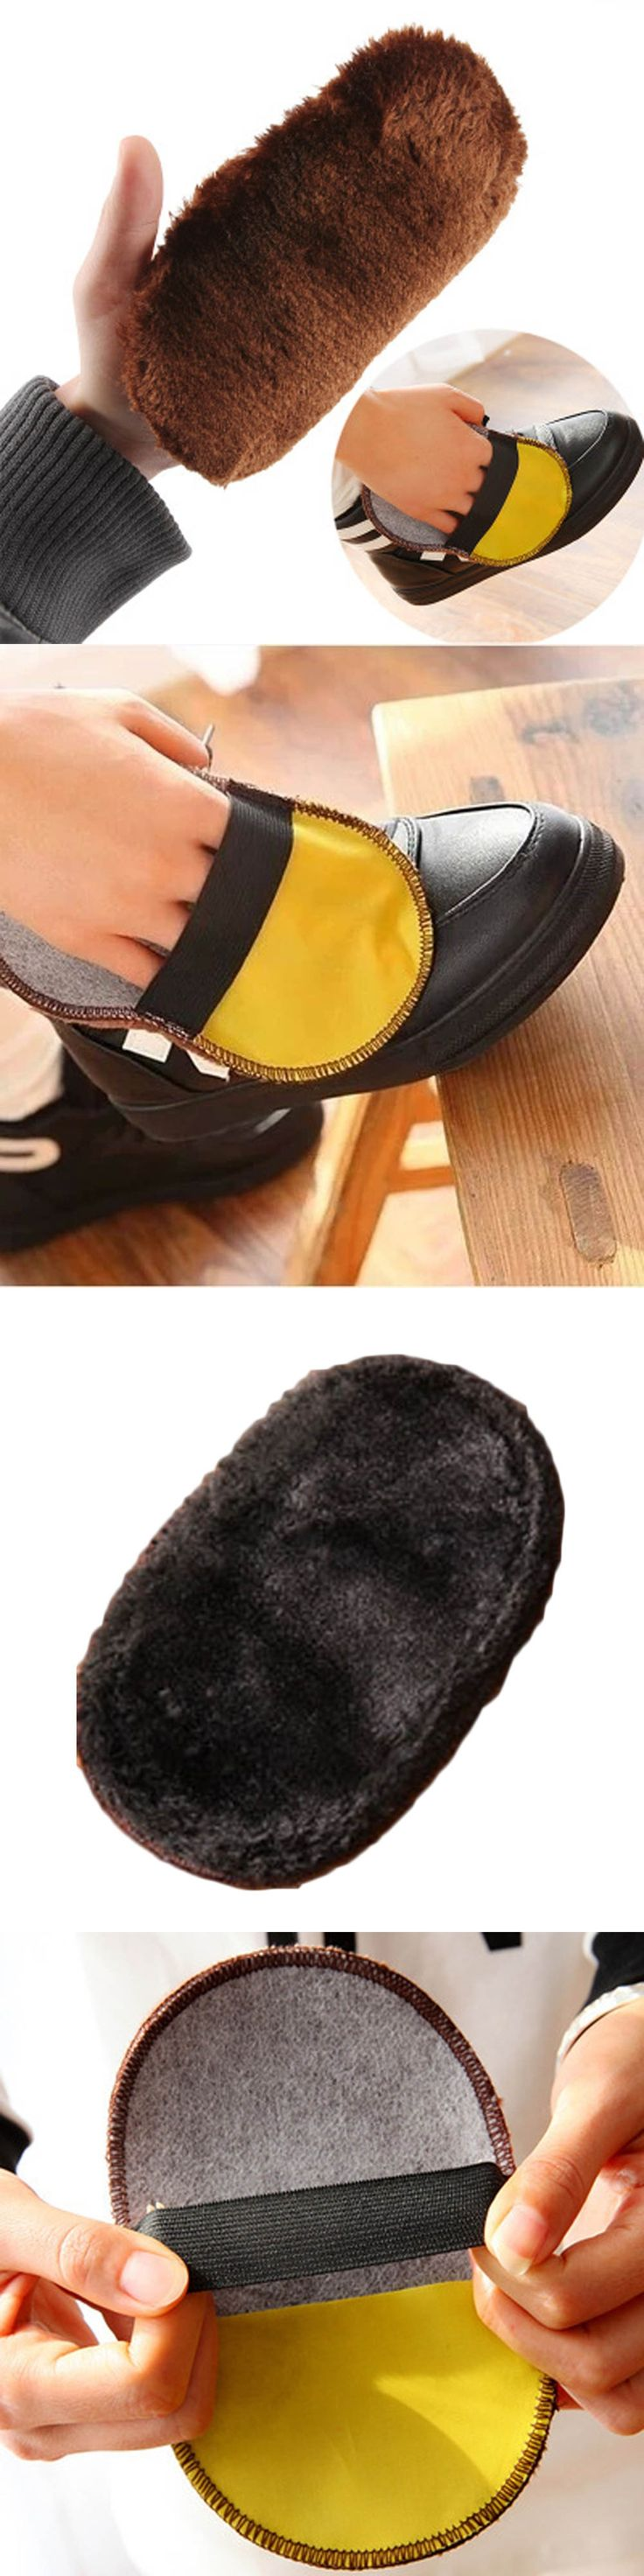 1Pcs Hot Shoe Care Brush Soft Wool Plush Shoe Gloves Wipe Shoes Mitt Suede Shoes Cleaner